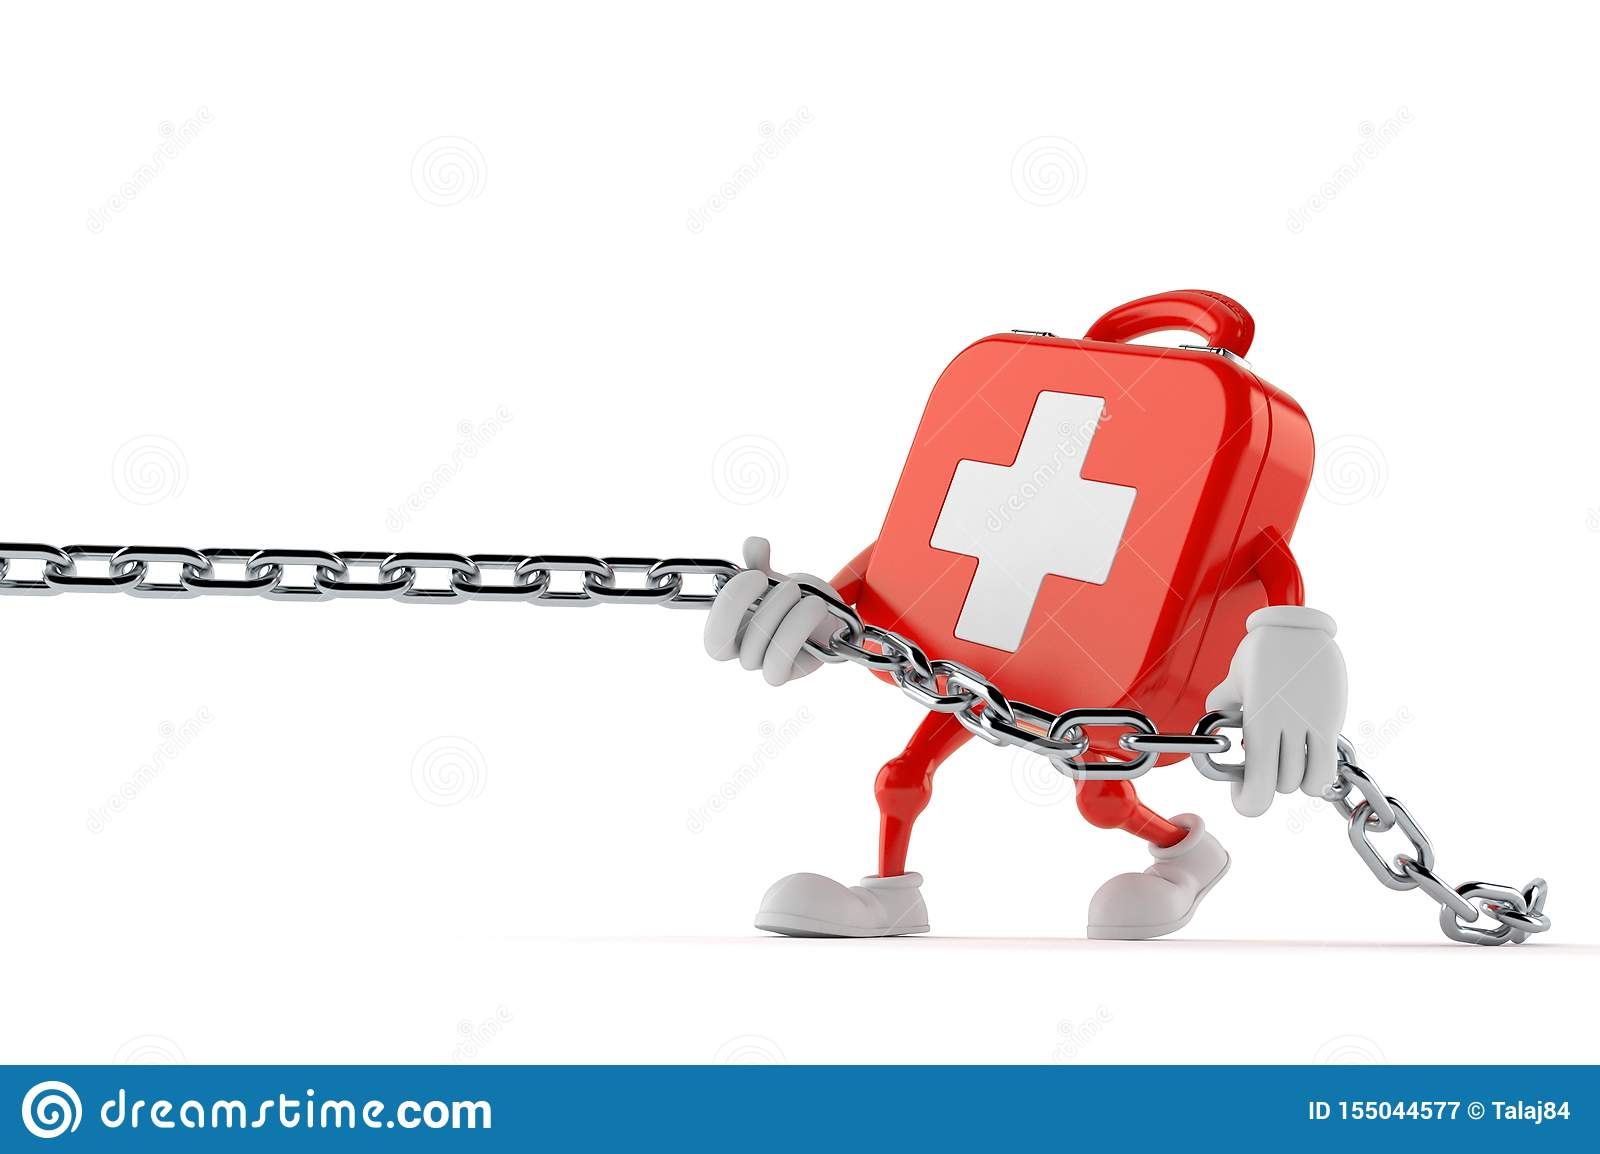 First aid kit character pulling chain